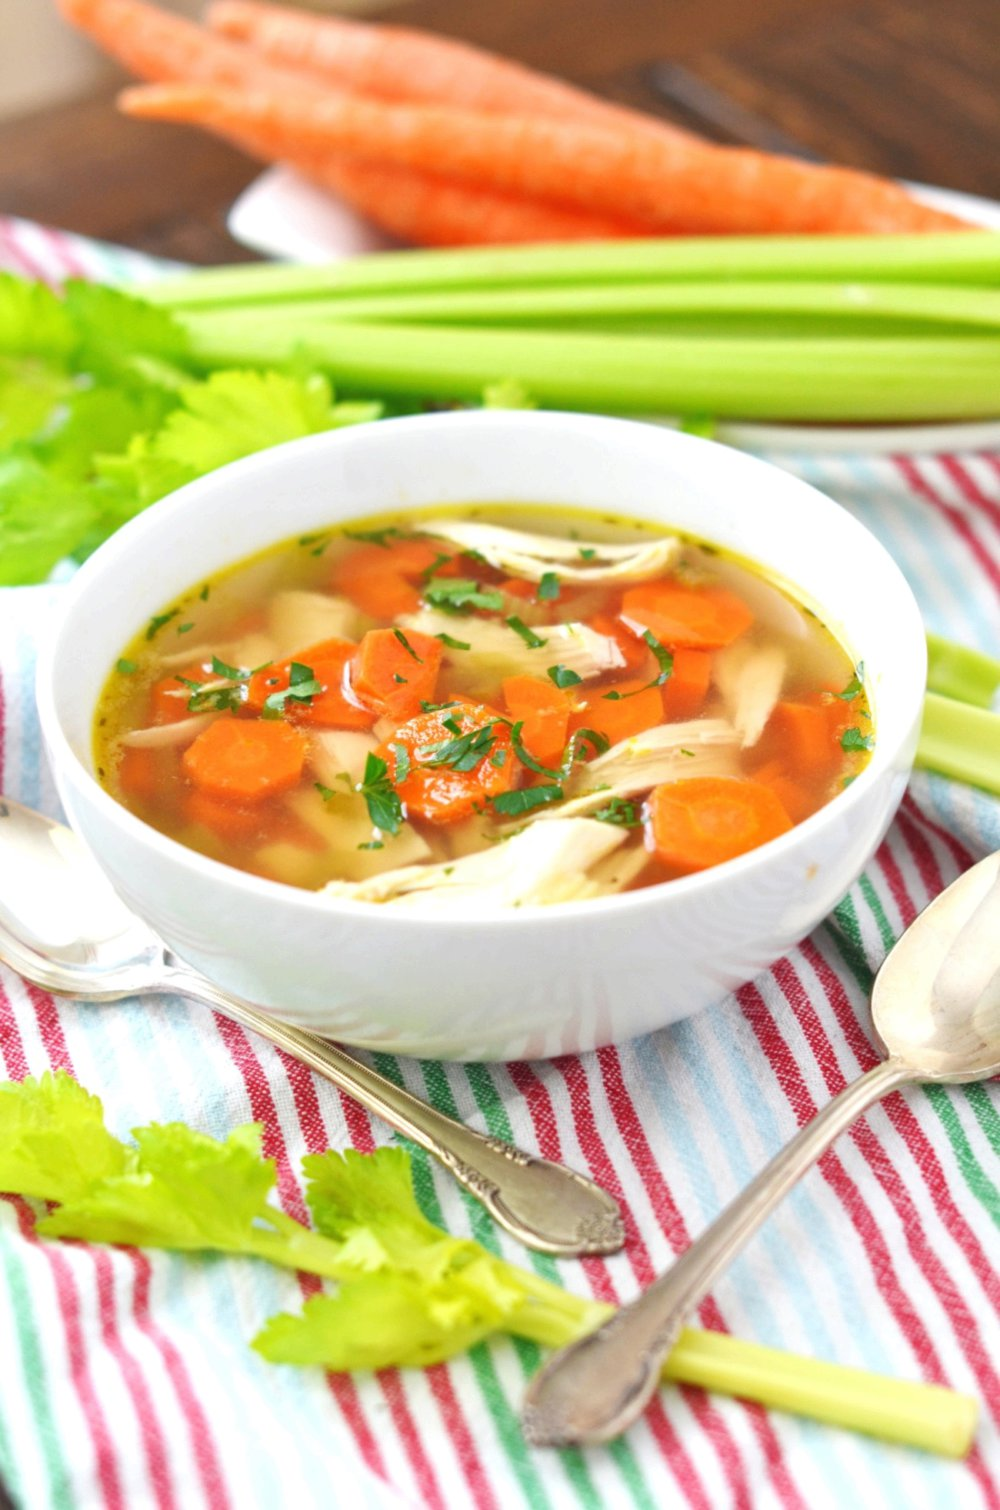 Awesome Chicken Gluten Free Soup - How To Make